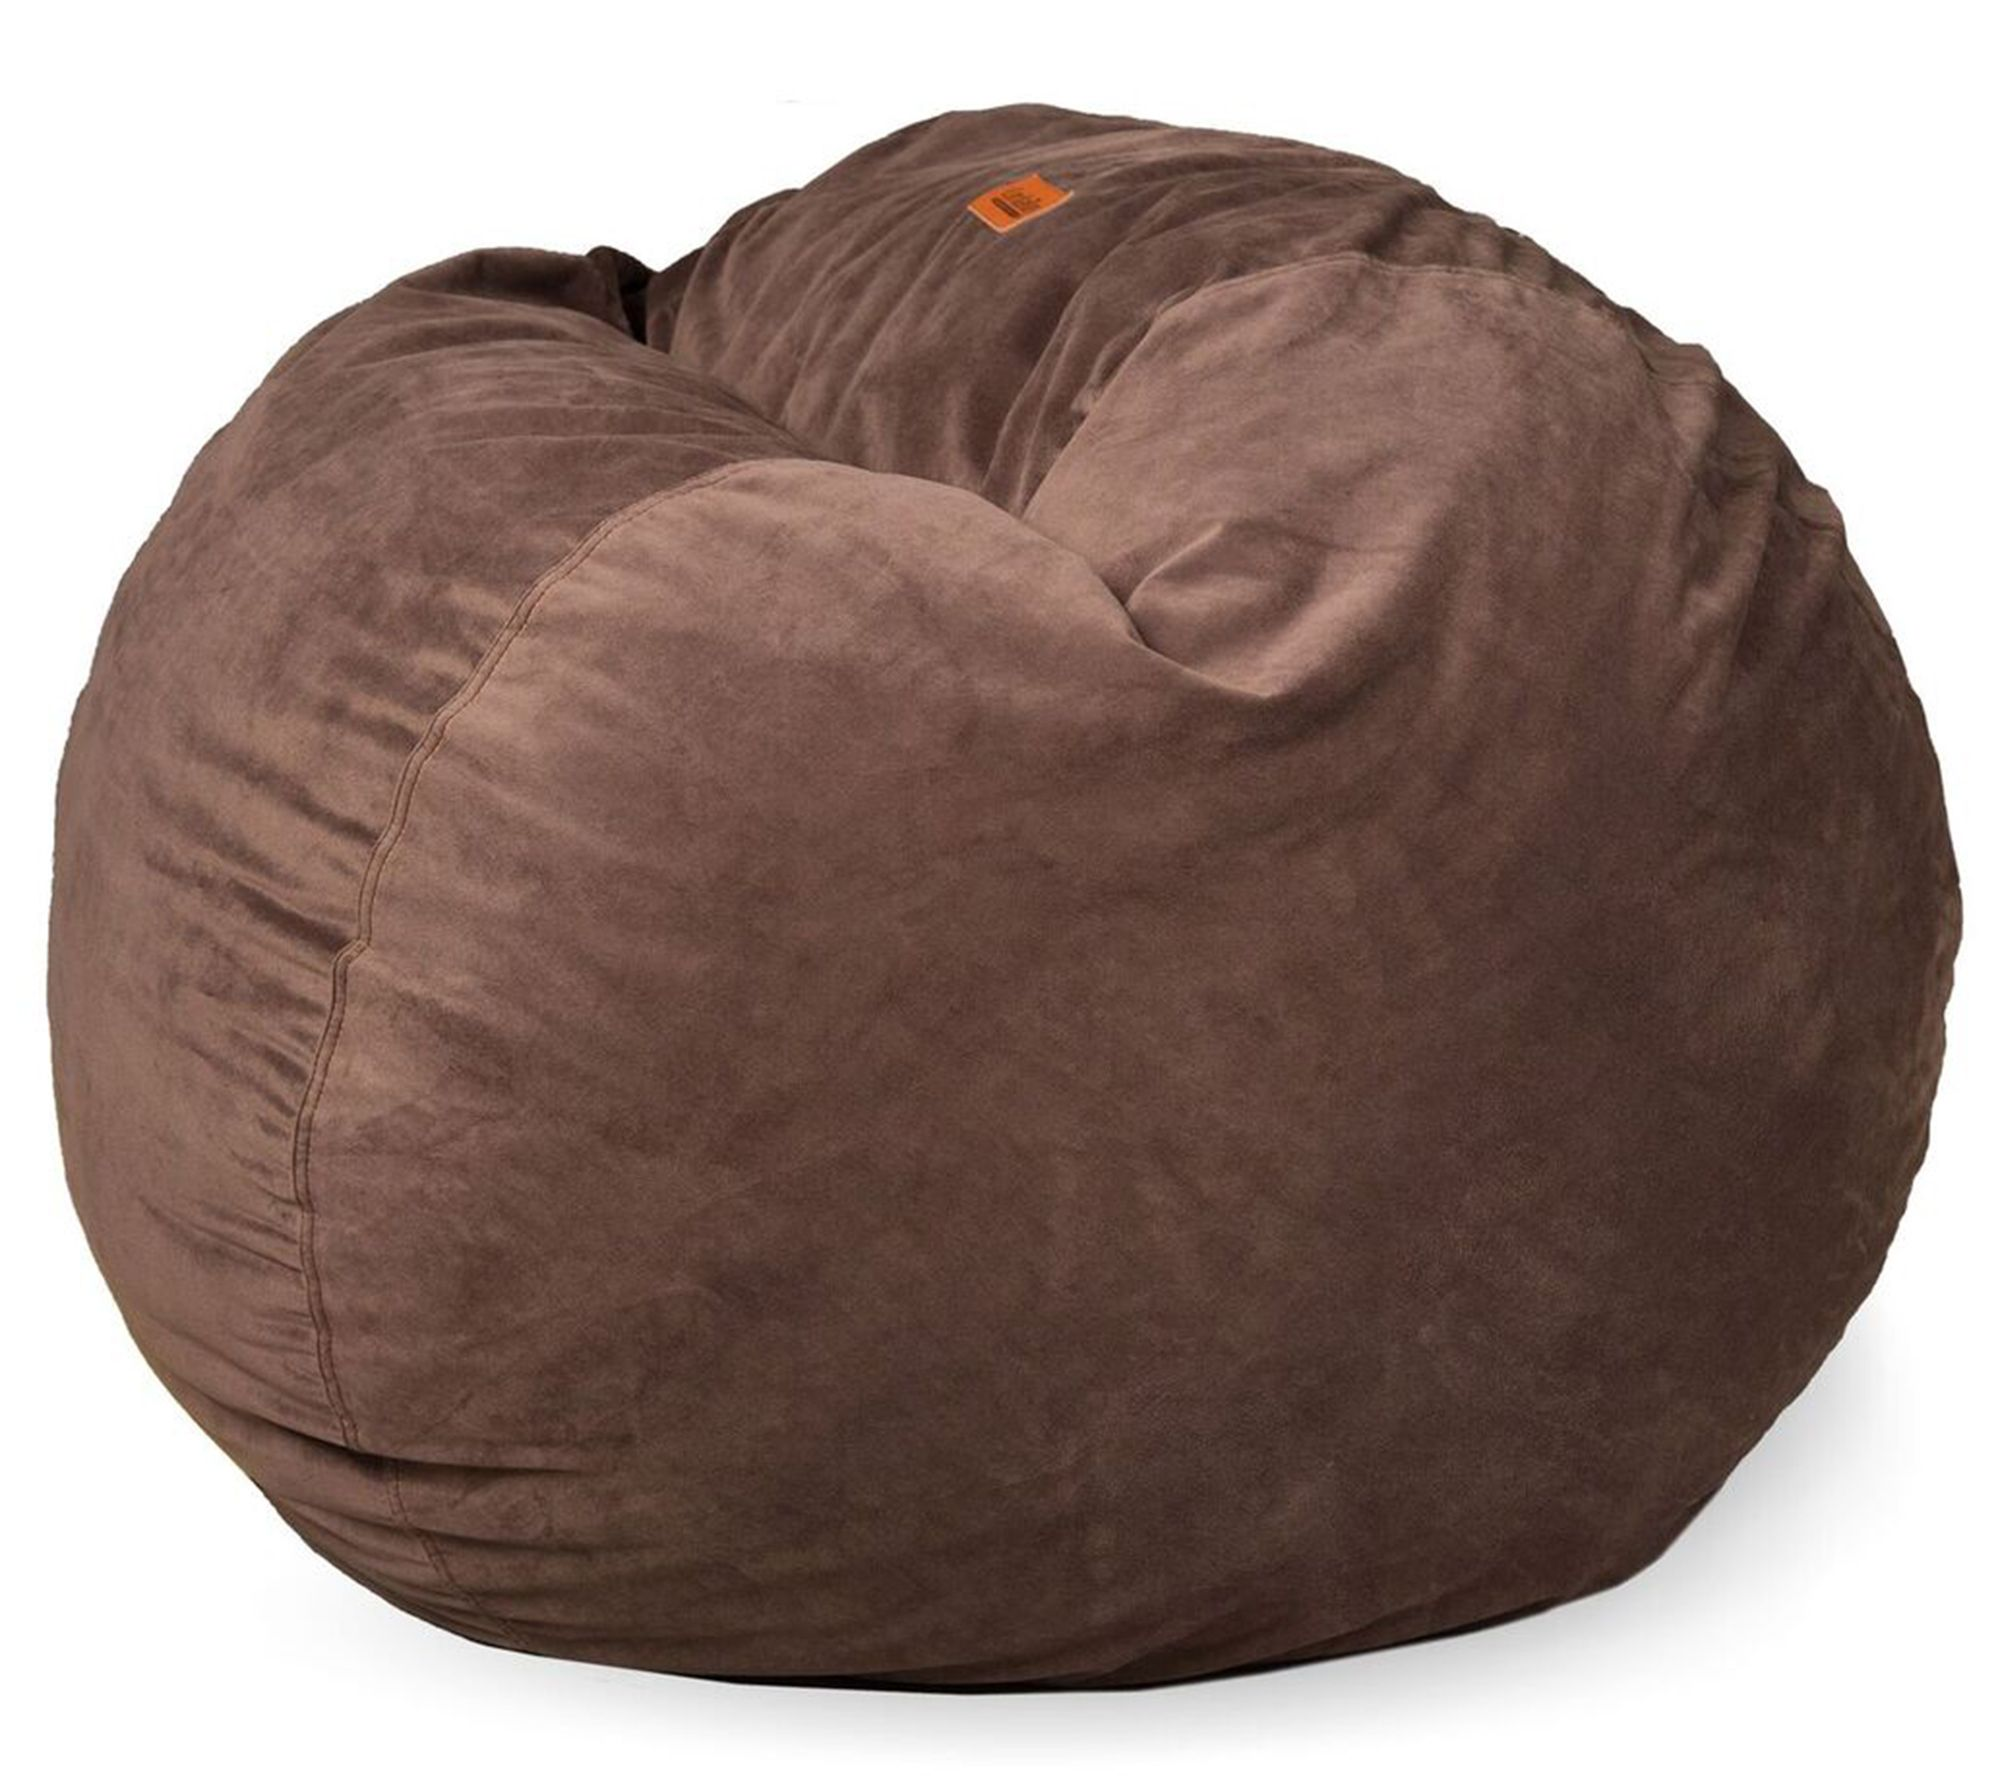 As Is CordaRoys Full Convertible Bean Bag Chair by Lori